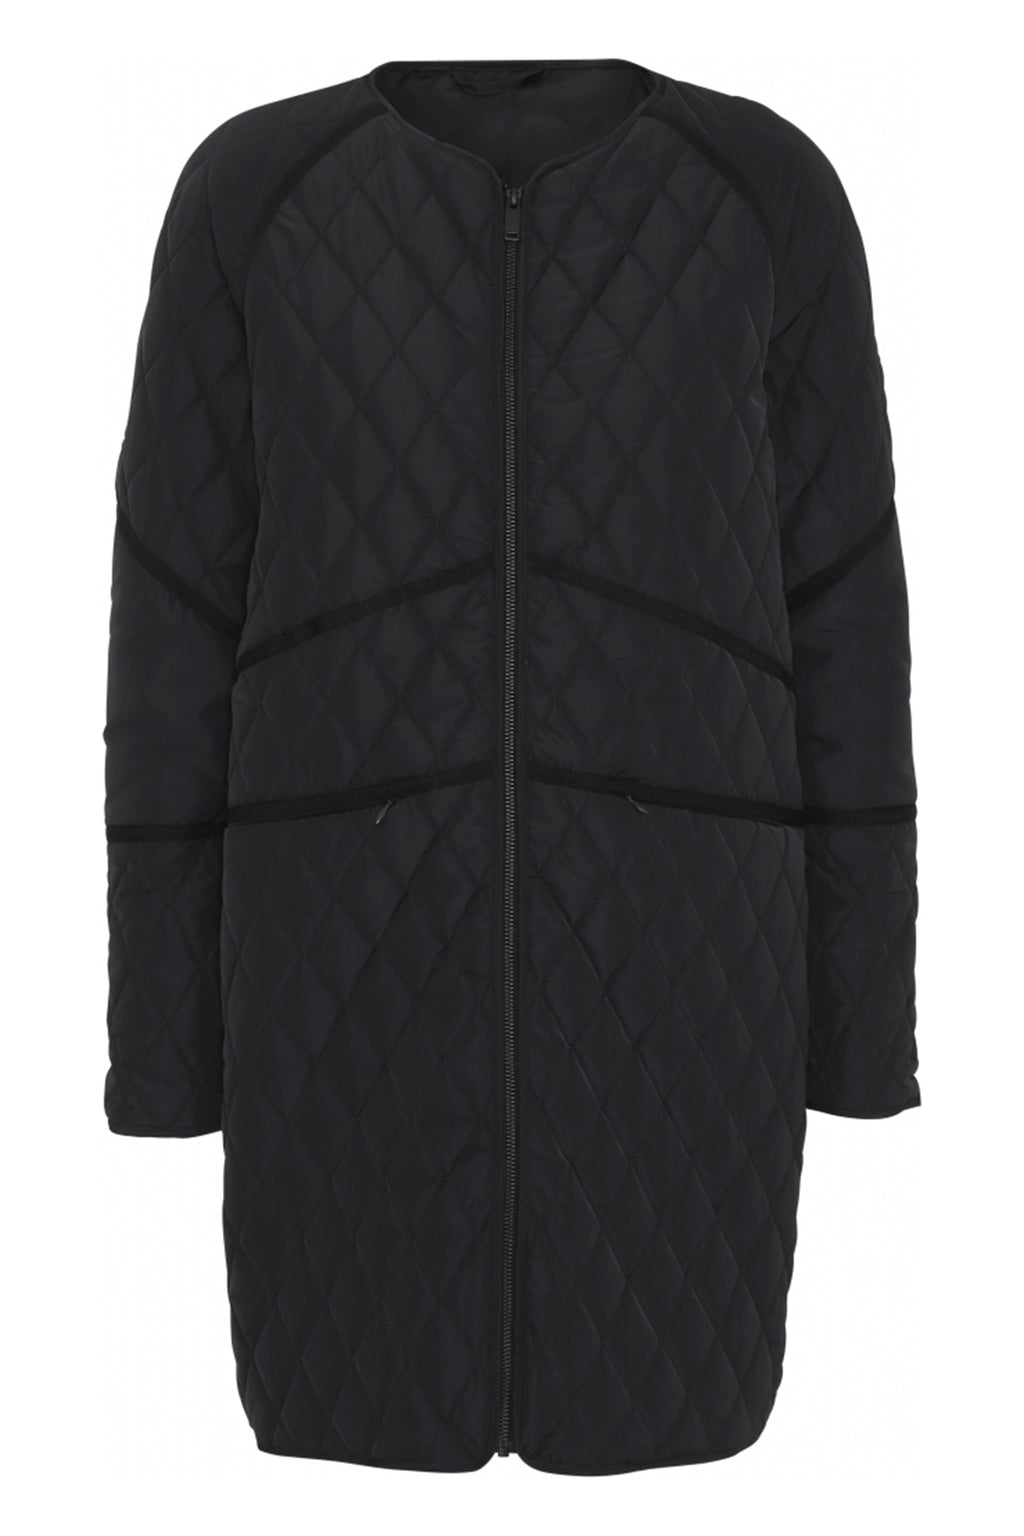 METTS - Quilted Jacket